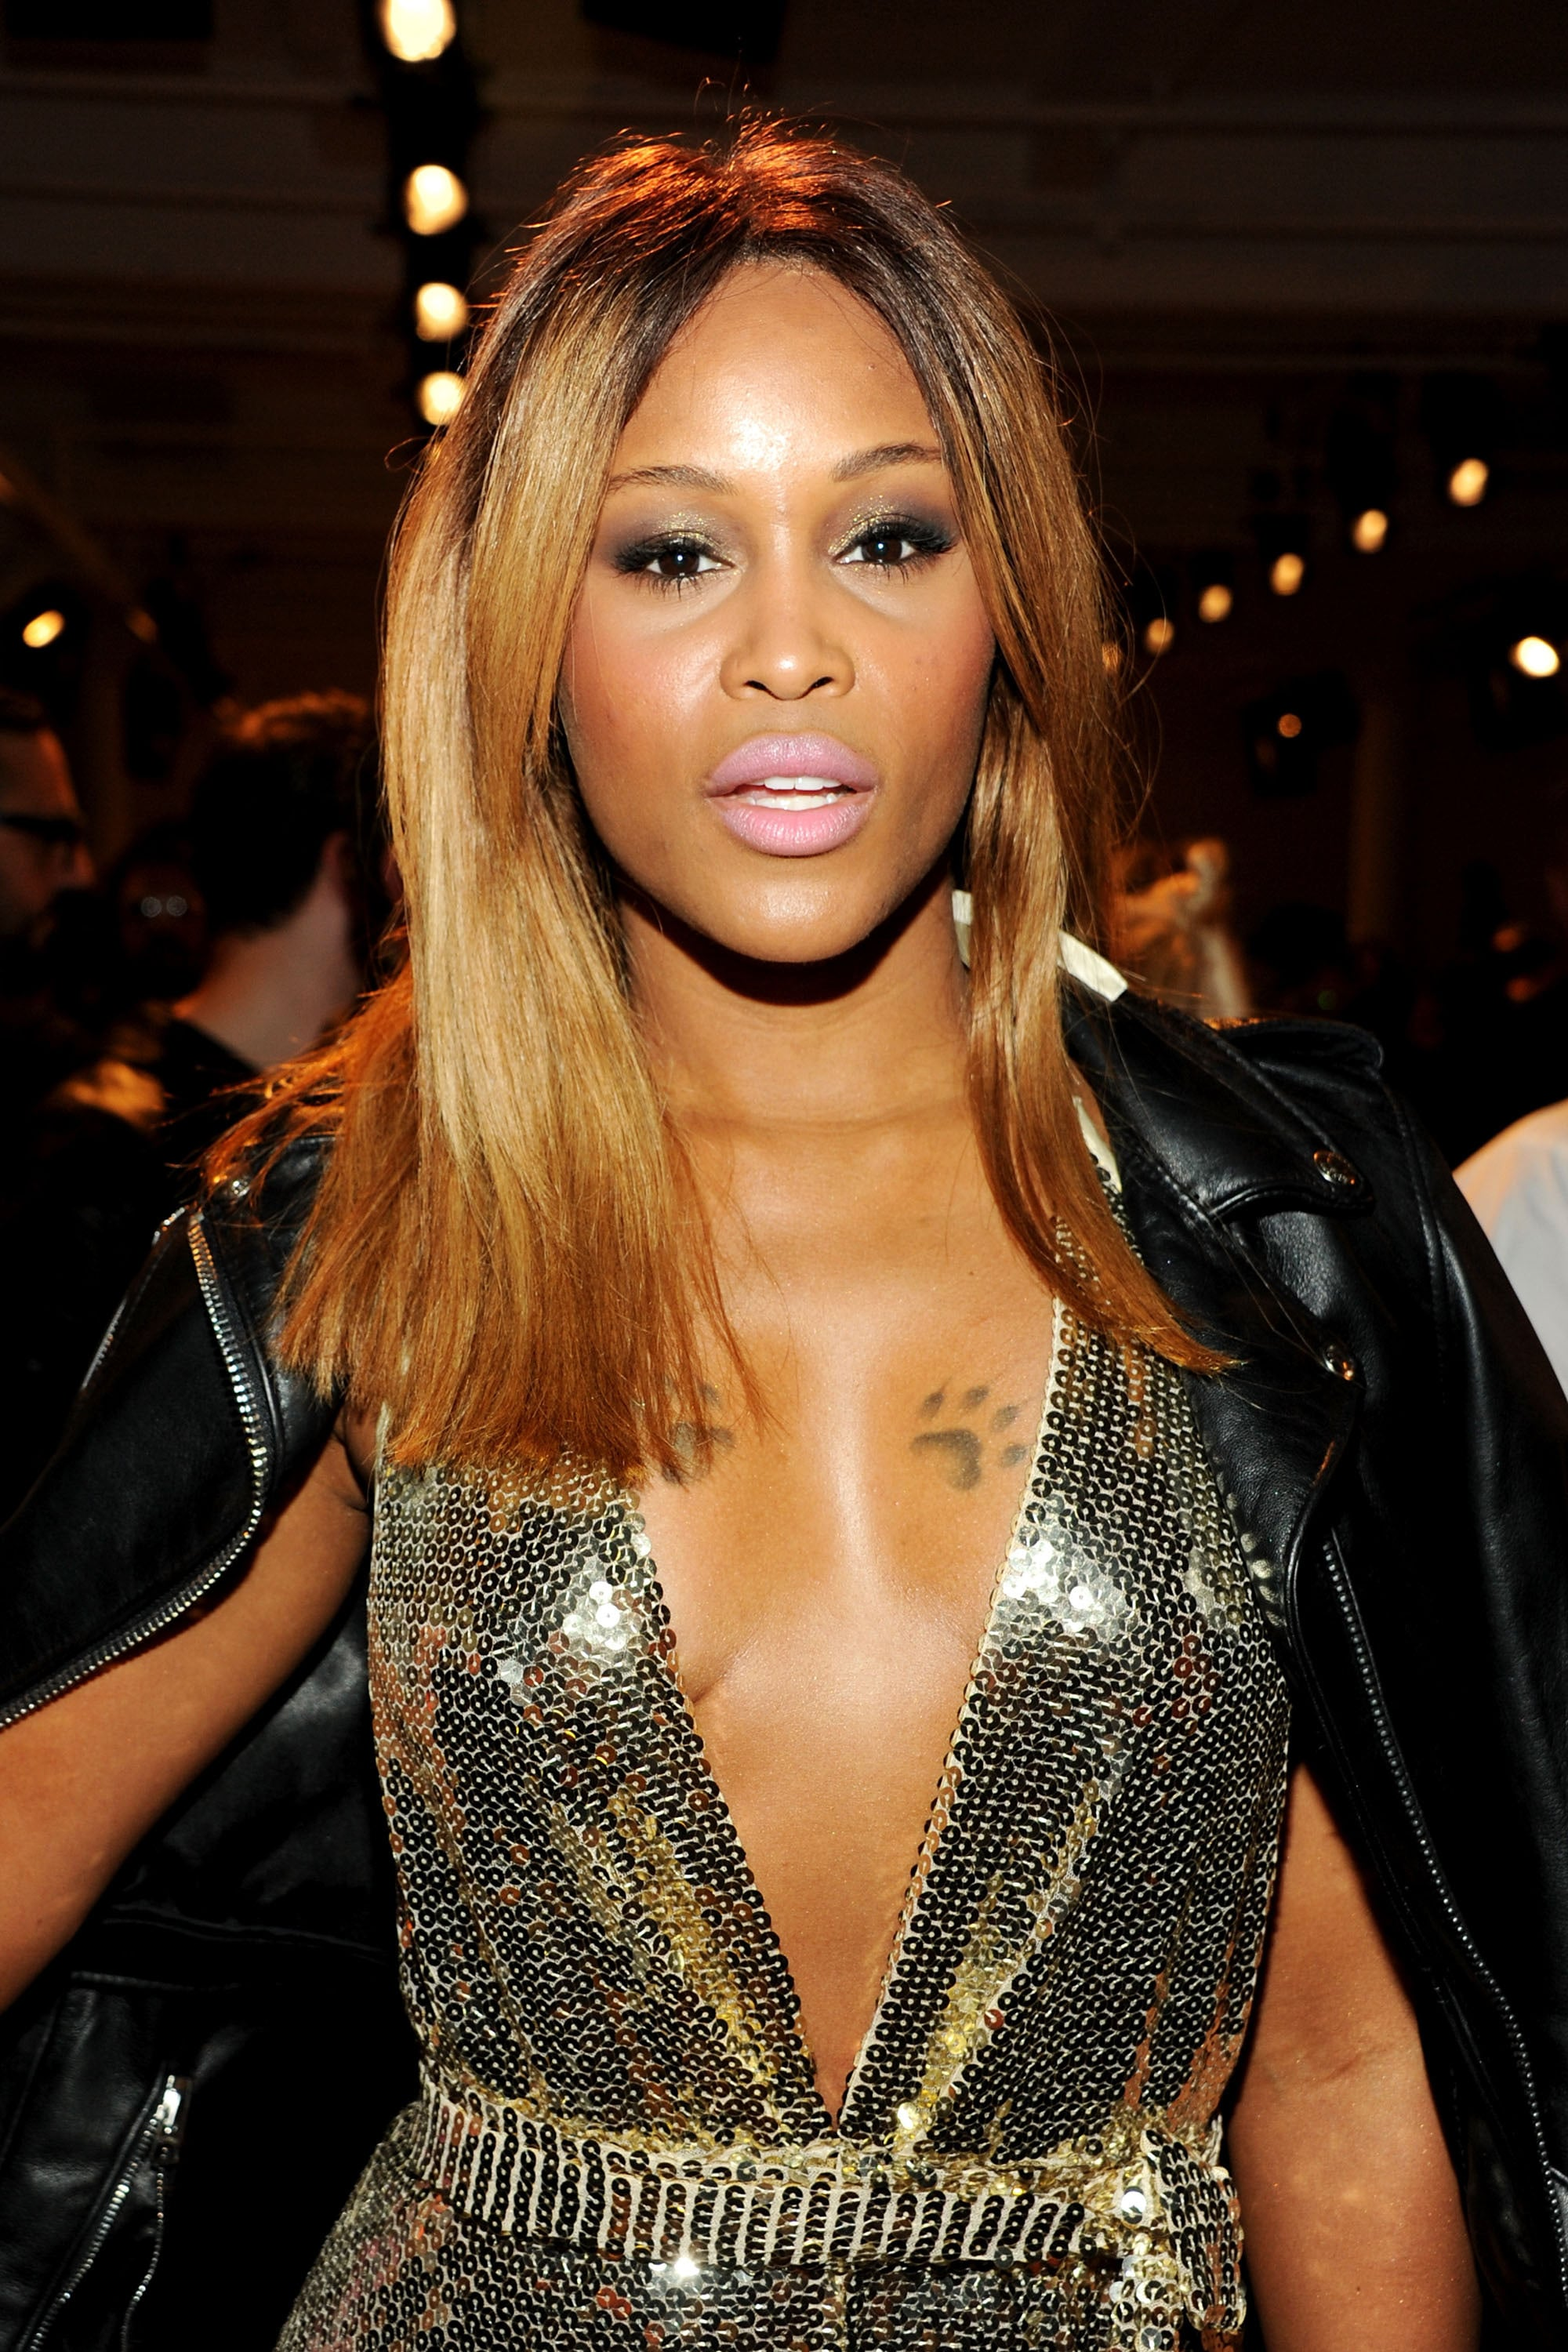 Eve at The Blonds Spring 2014.